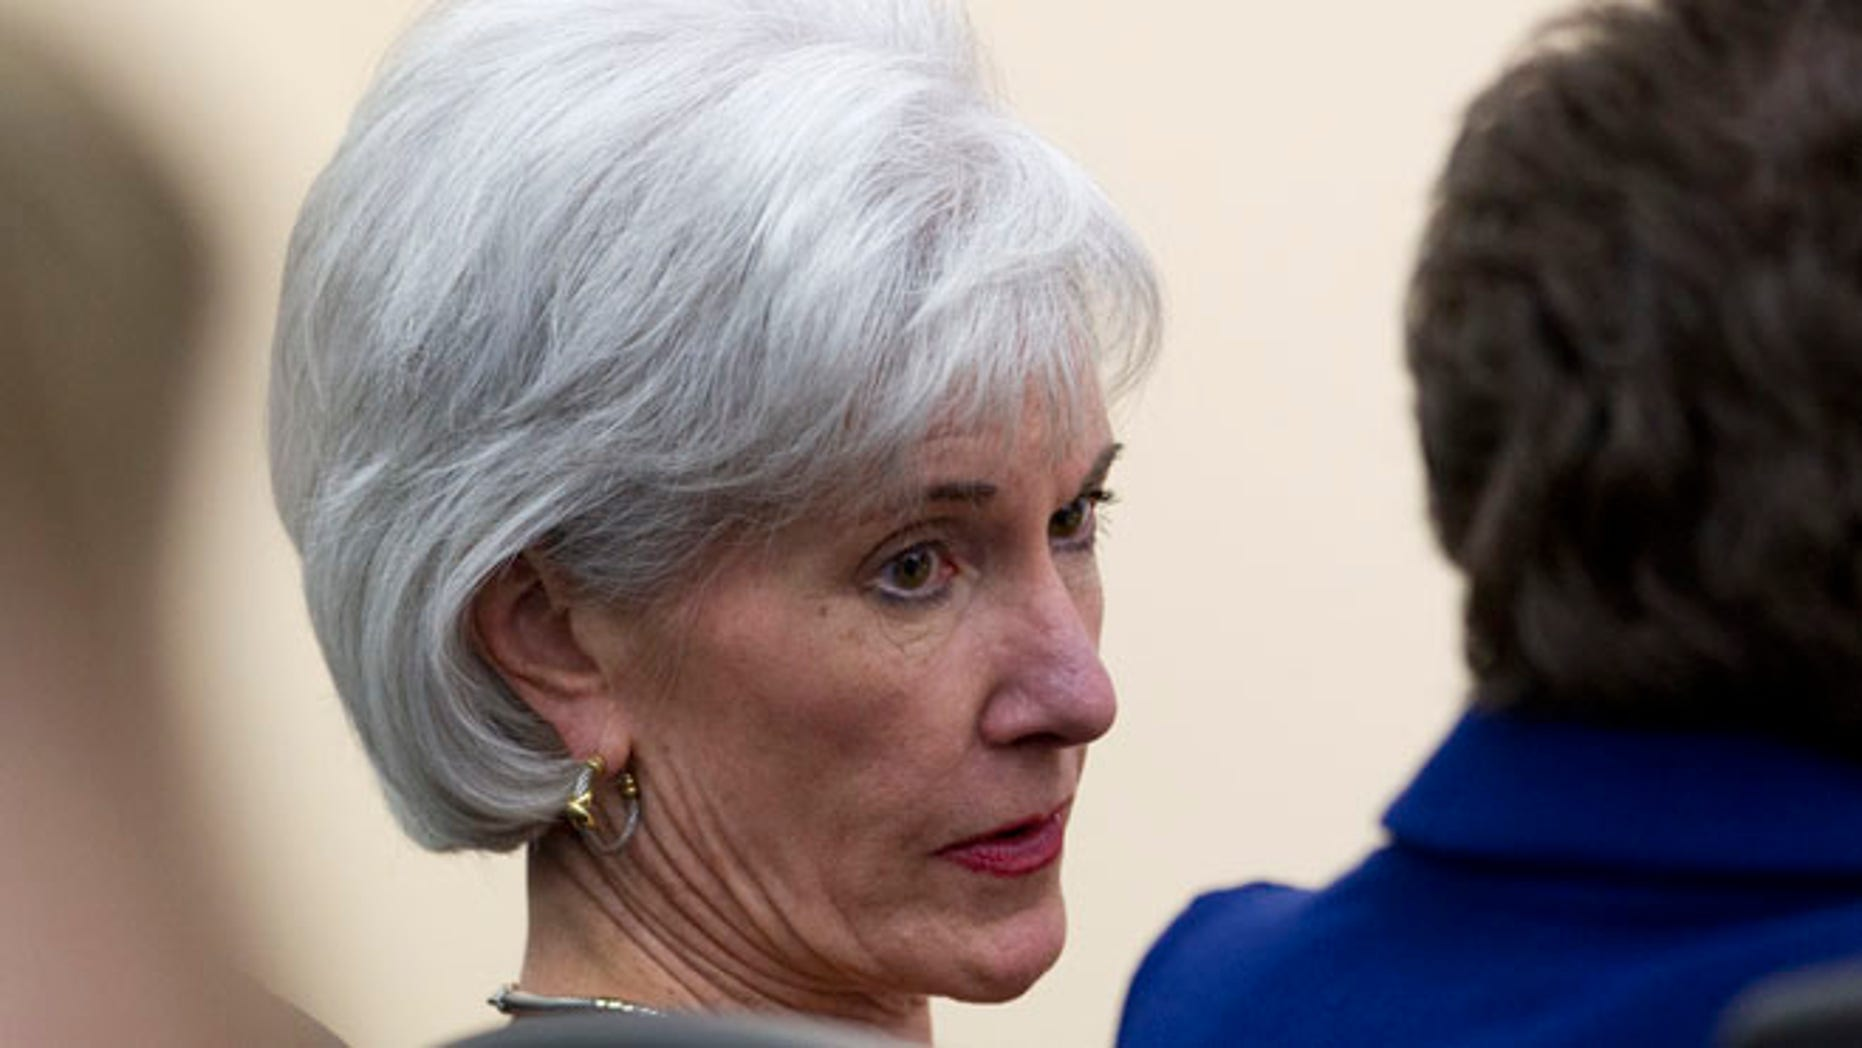 Health and Human Services Secretary Kathleen Sebelius, Tuesday, Dec. 3, 2013, at the White House complex in Washington.